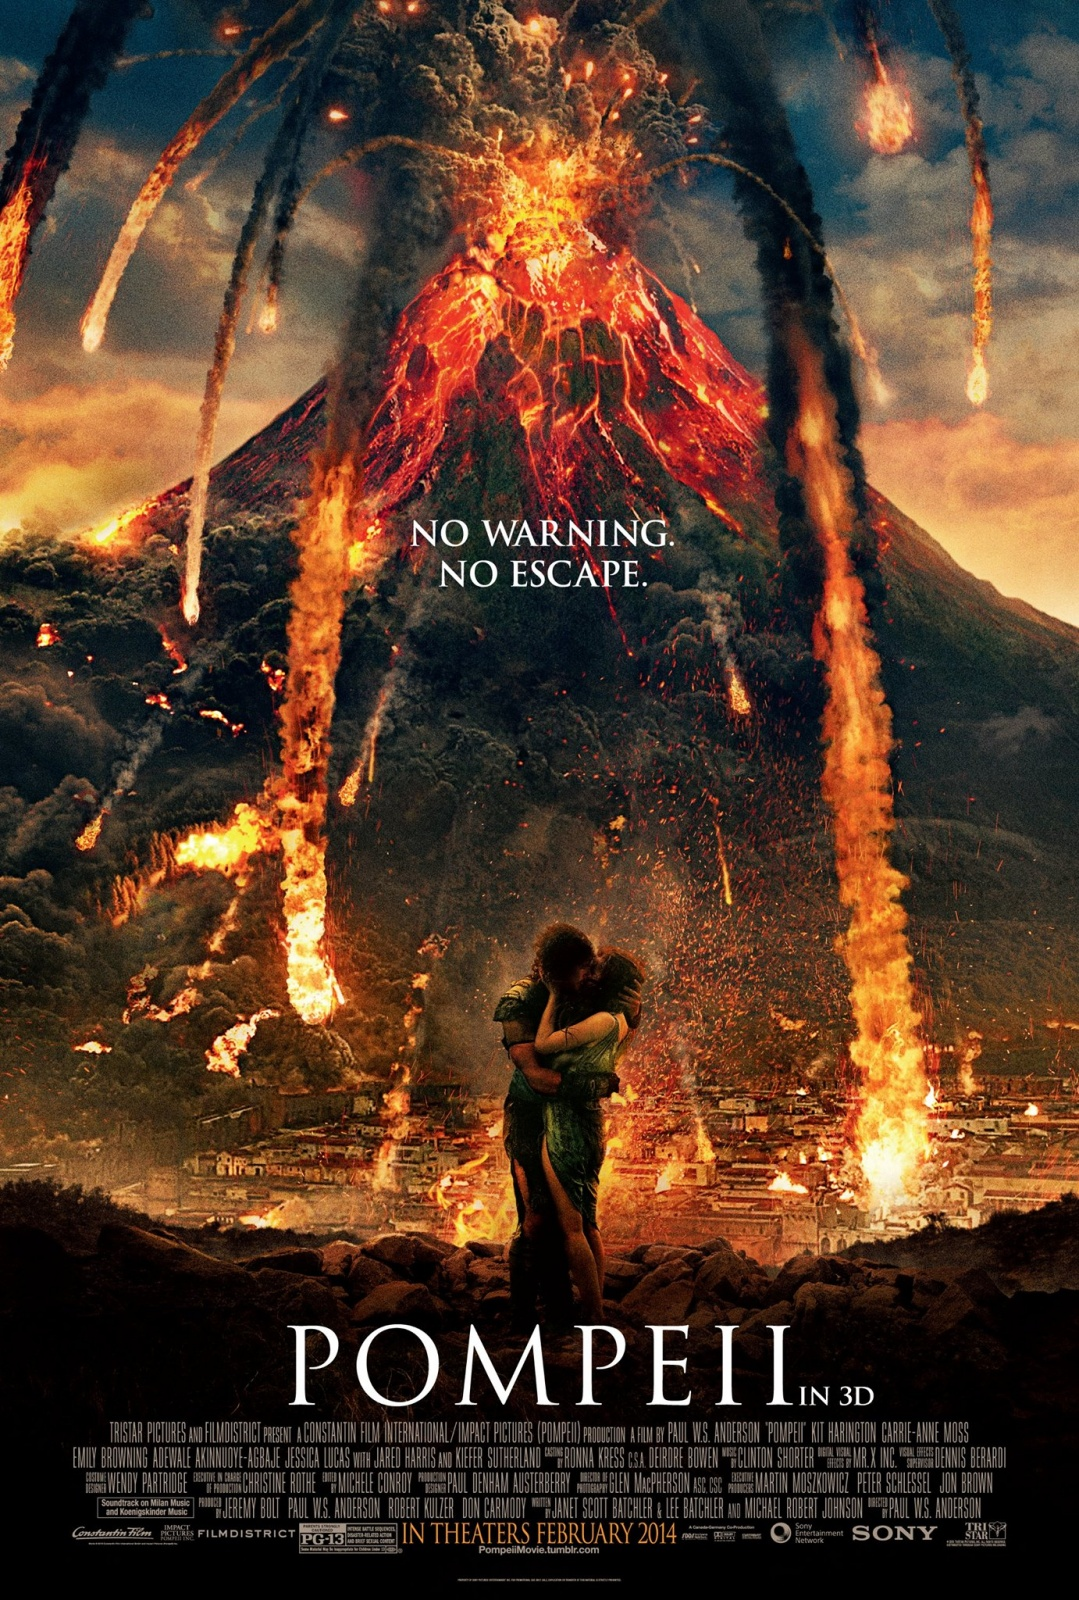 https://i1.wp.com/sideonetrackone.com/wp-content/uploads/2014/02/Pompeii-2014-Movie-Poster1.jpg